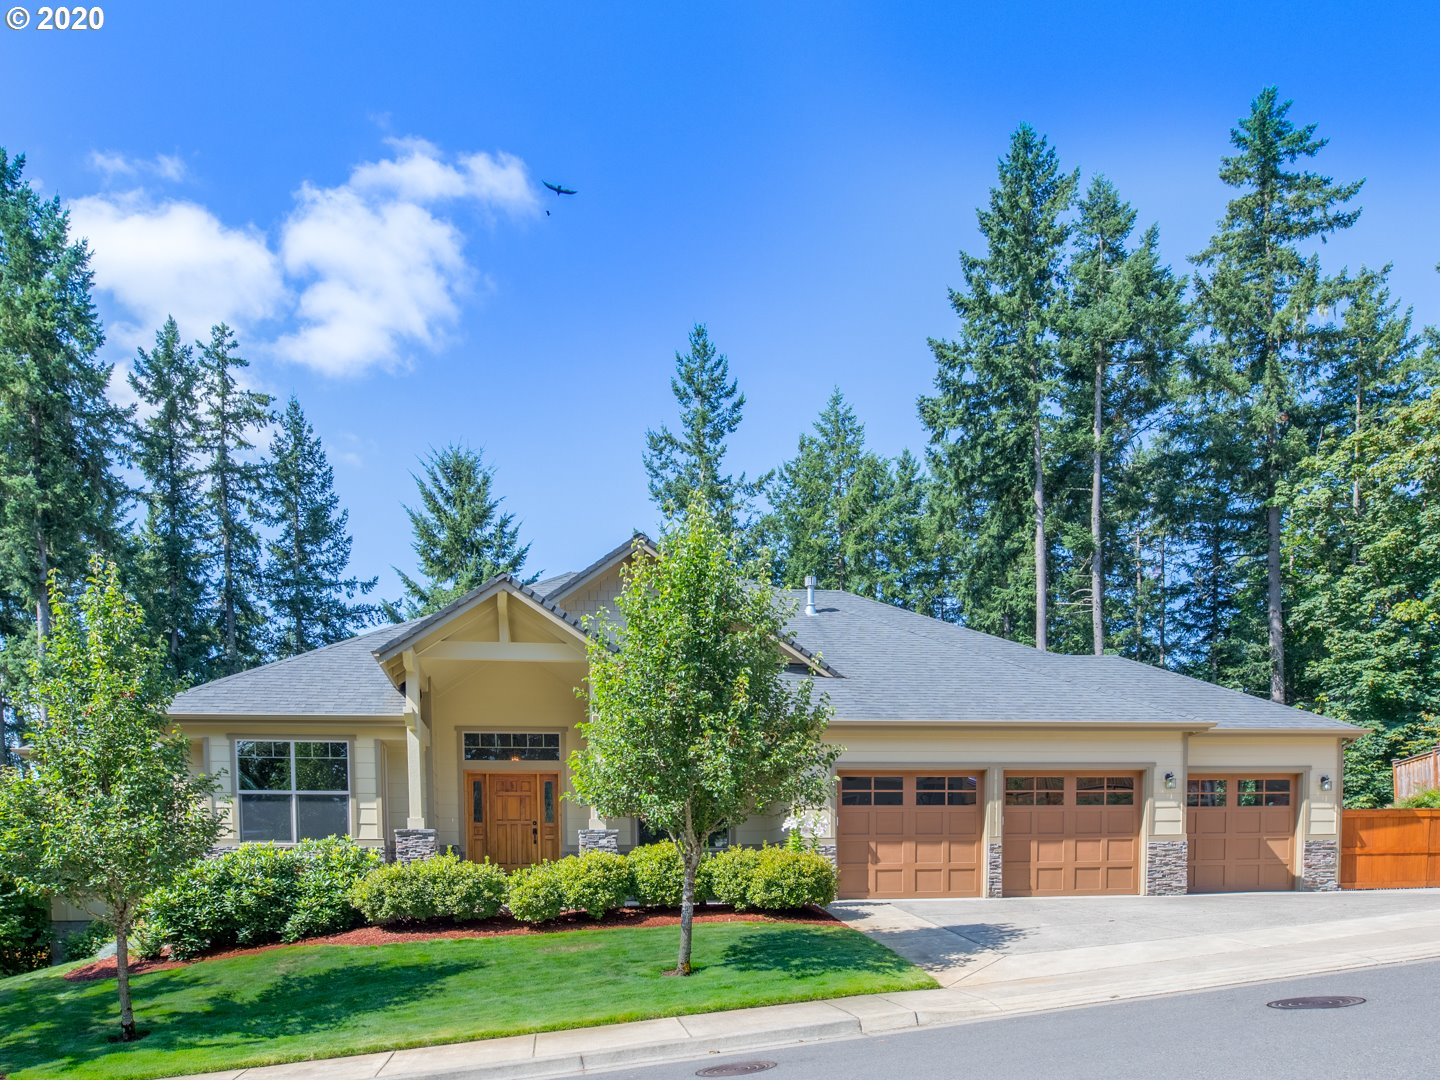 6156 GRAYSTONE LOOP, Springfield OR 97478